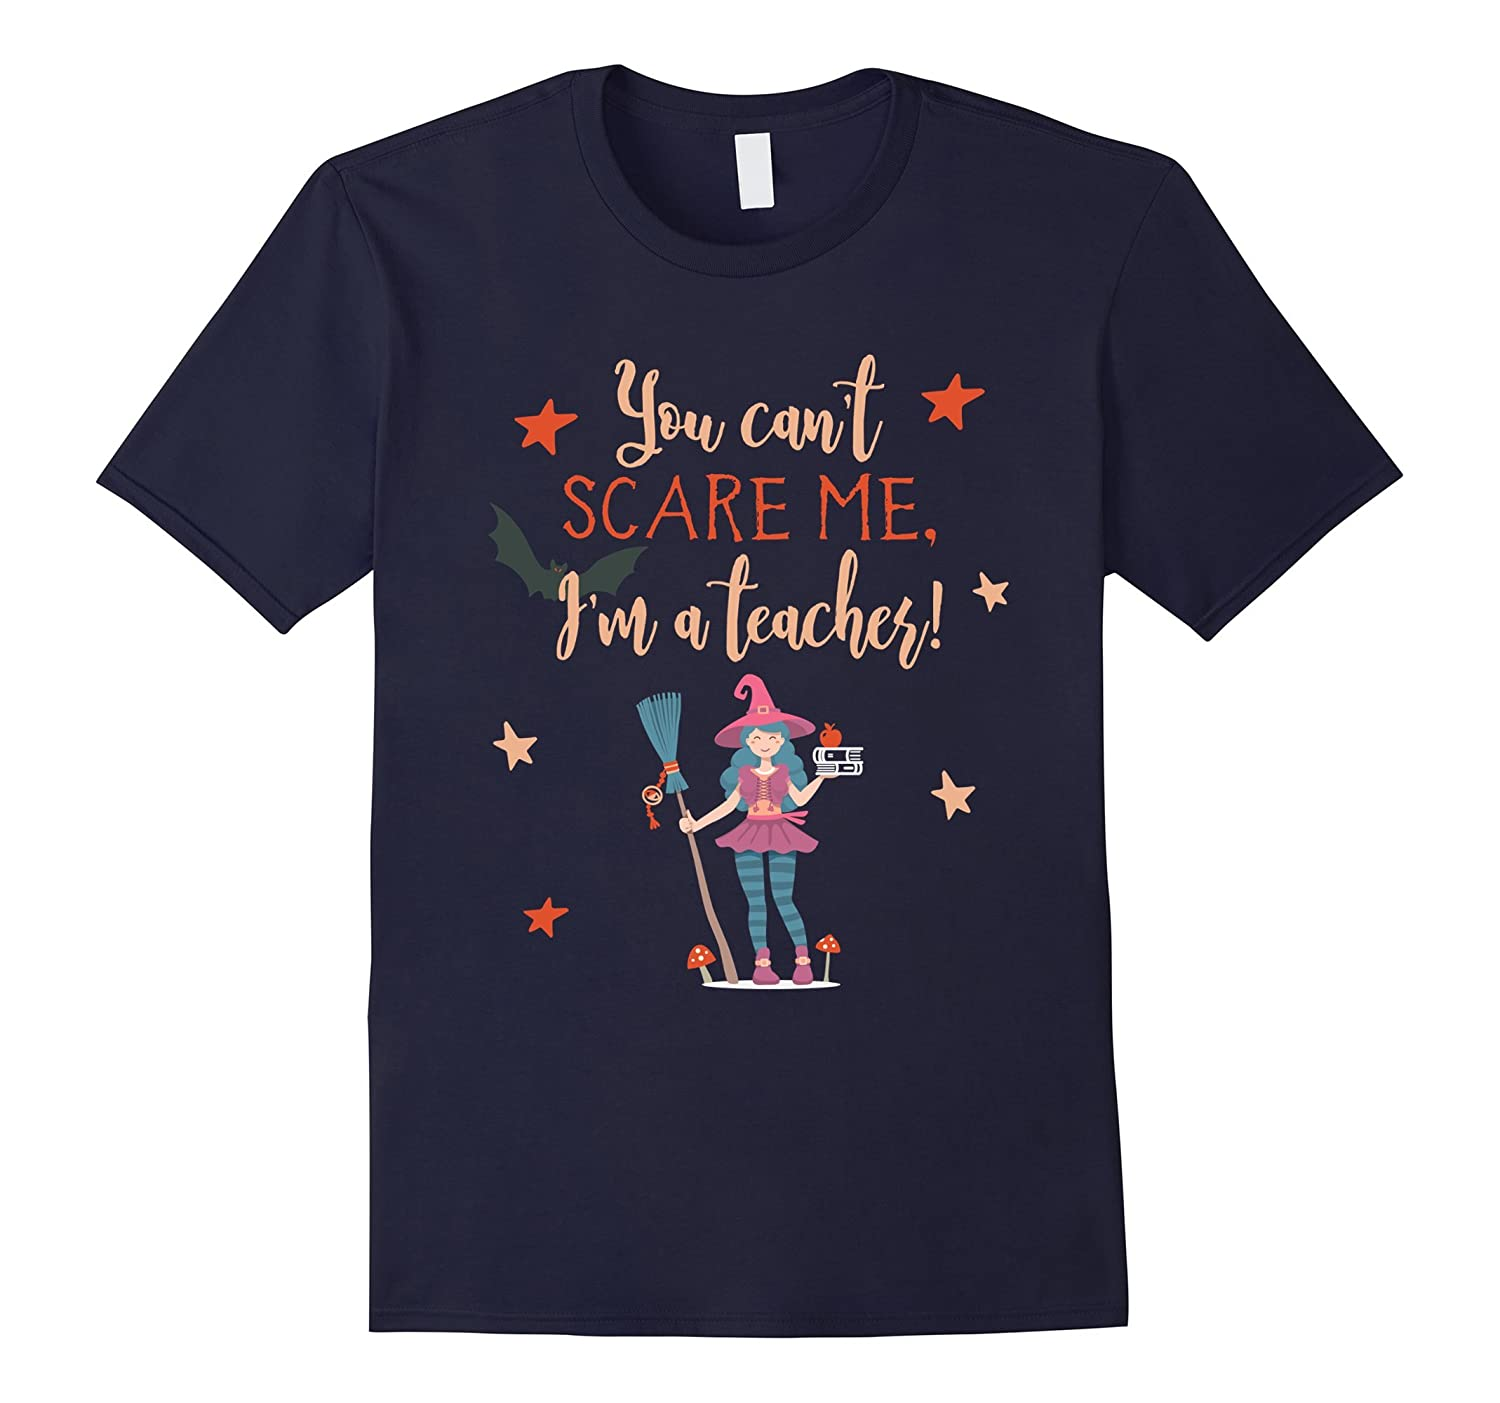 You Can't Scare Me, I'm a Teacher T-Shirt for Halloween-CL